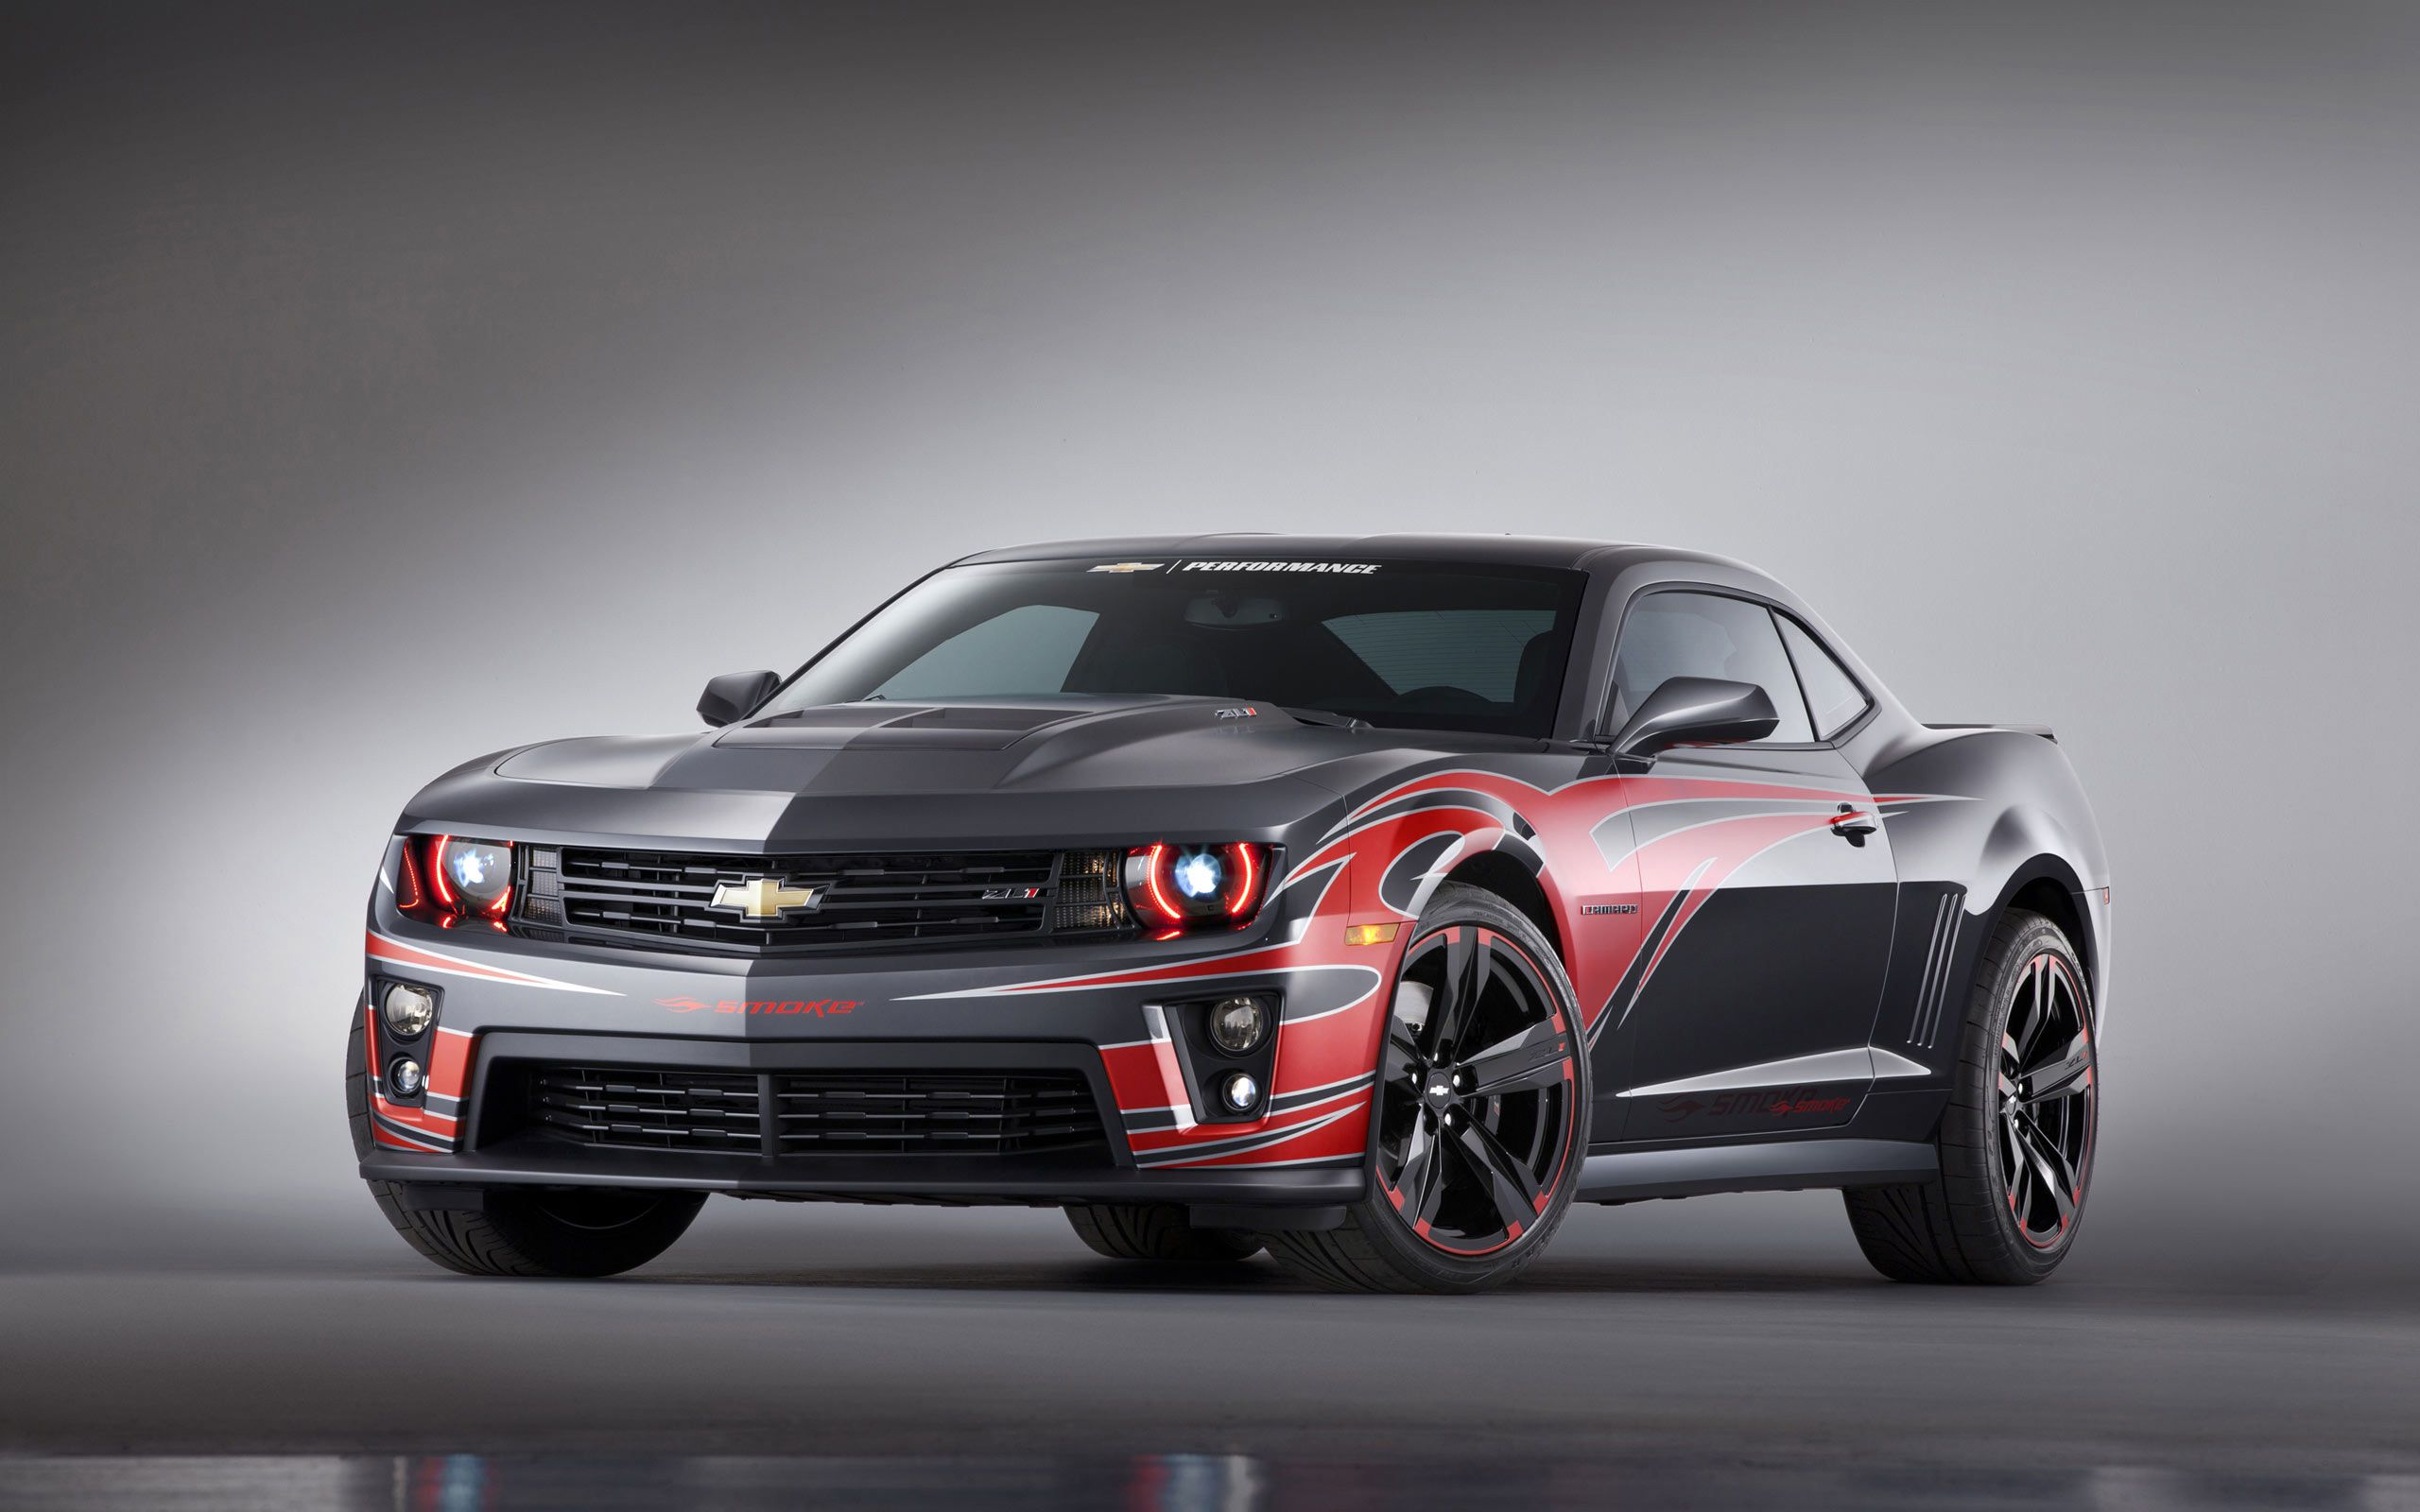 2012 chevrolet camaro zl1 wide is an hd wallpaper posted in cars category you can